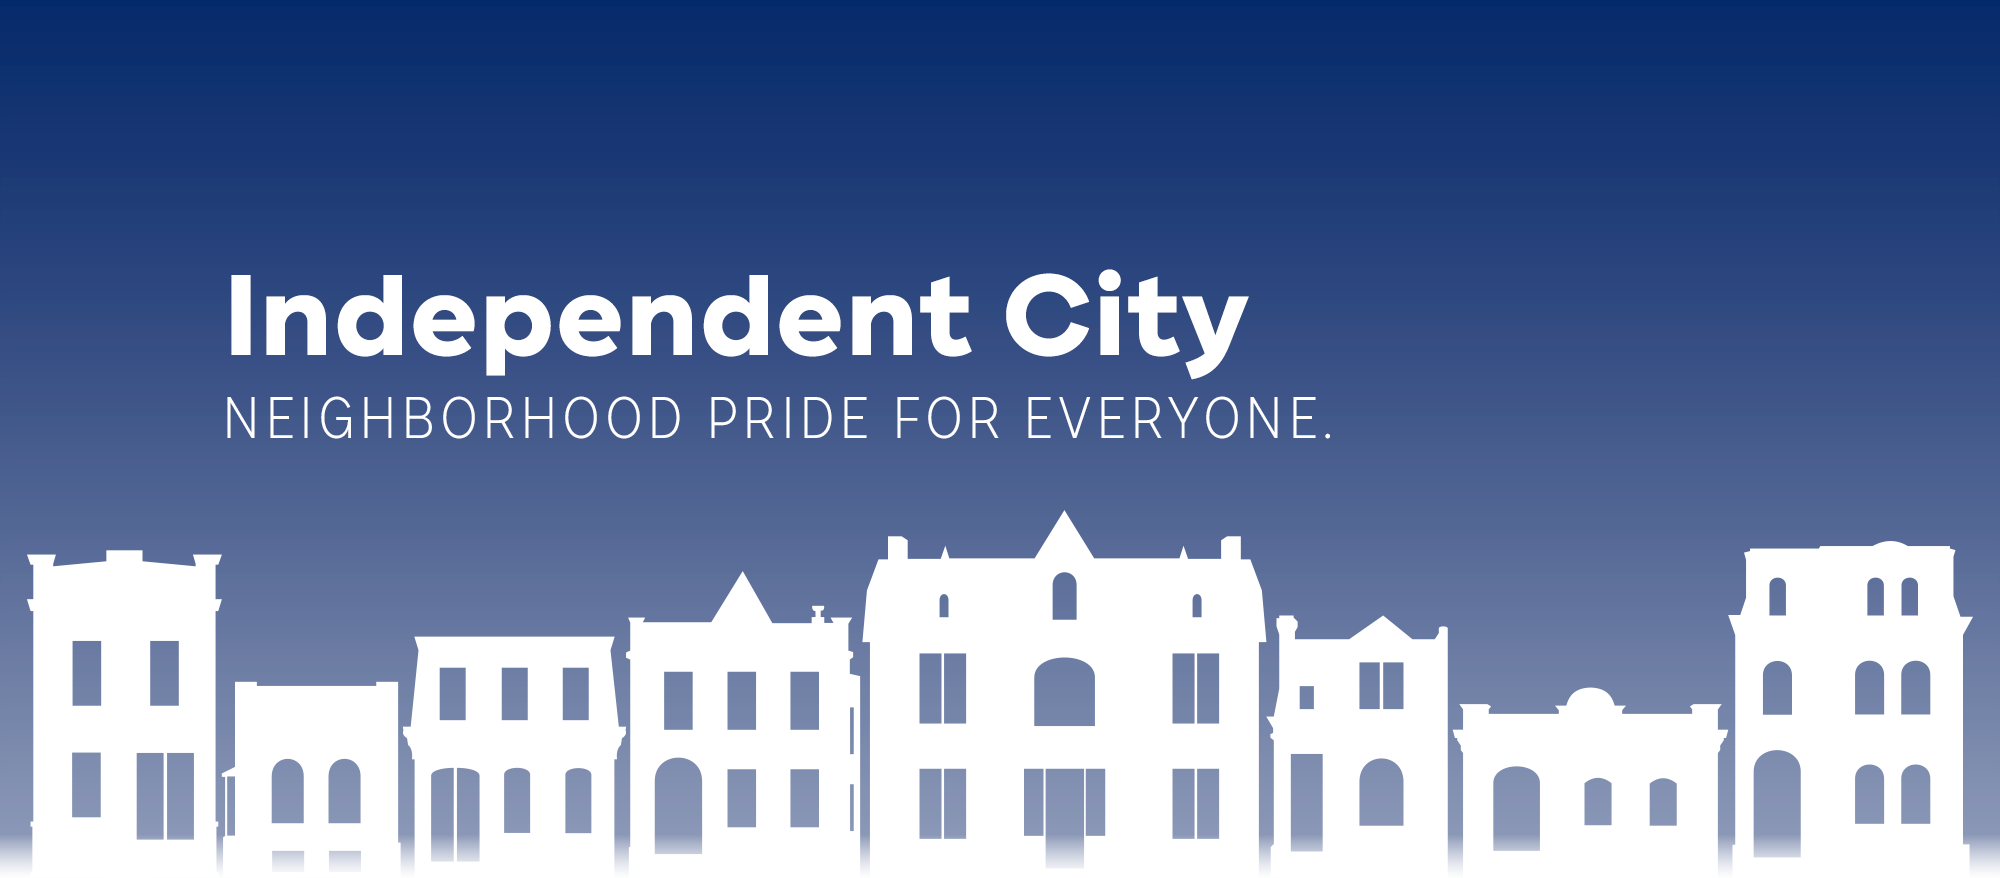 Independent City: Neighborhood pride for everyone.